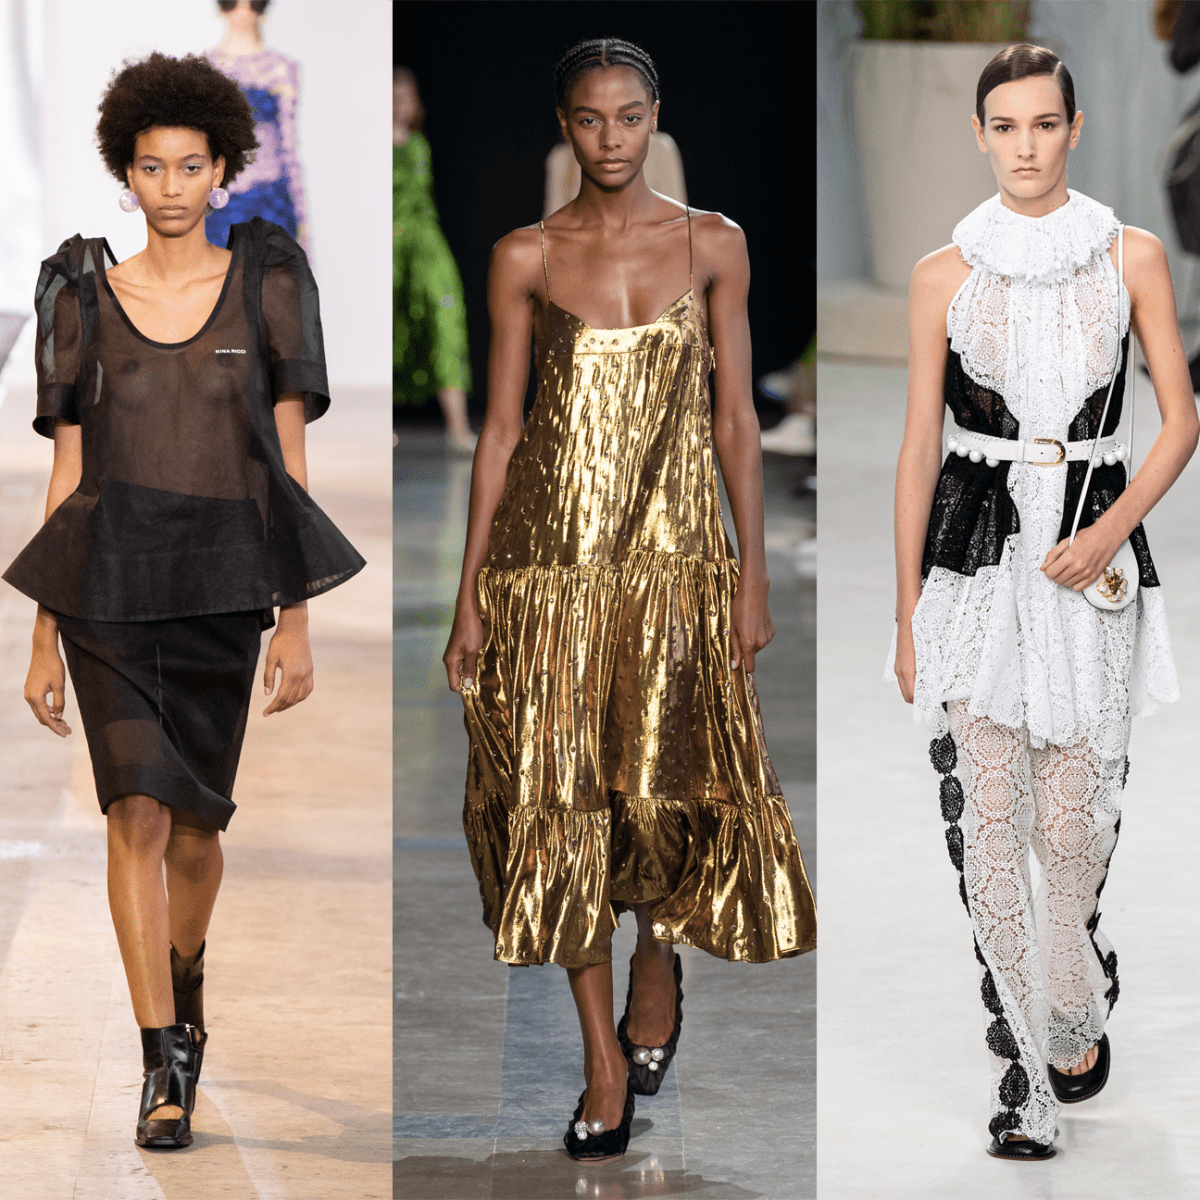 7 Top Trends From the Paris Spring 7 Runways - Fashionista